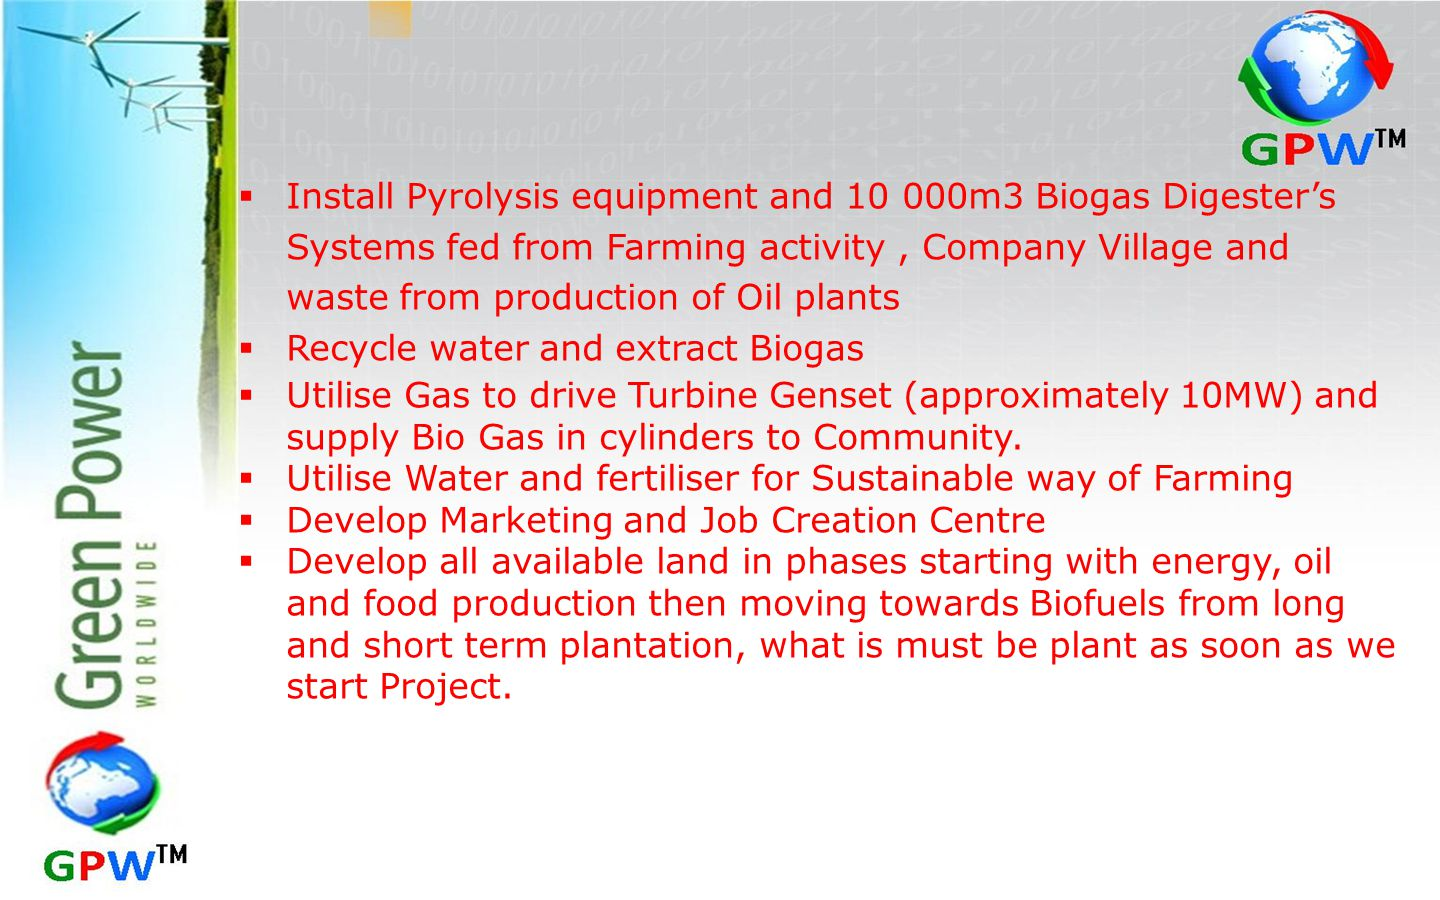  Install Pyrolysis equipment and 10 000m3 Biogas Digester's Systems fed from Farming activity, Company Village and waste from production of Oil plants  Recycle water and extract Biogas  Utilise Gas to drive Turbine Genset (approximately 10MW) and supply Bio Gas in cylinders to Community.